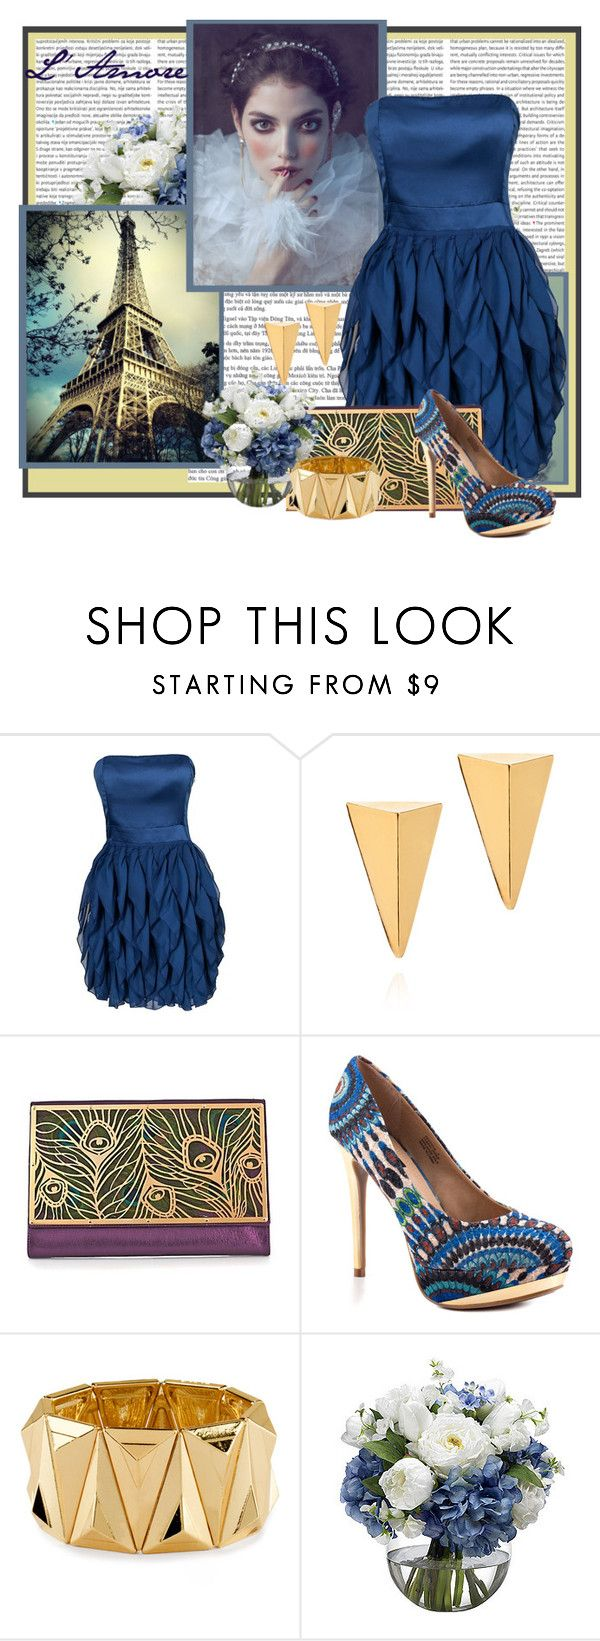 """Peacocks and Gold"" by mz-happy ❤ liked on Polyvore featuring B.Young, John & Pearl, Raven Kauffman, ZIGIgirl, H&M, Diane James and Arco"